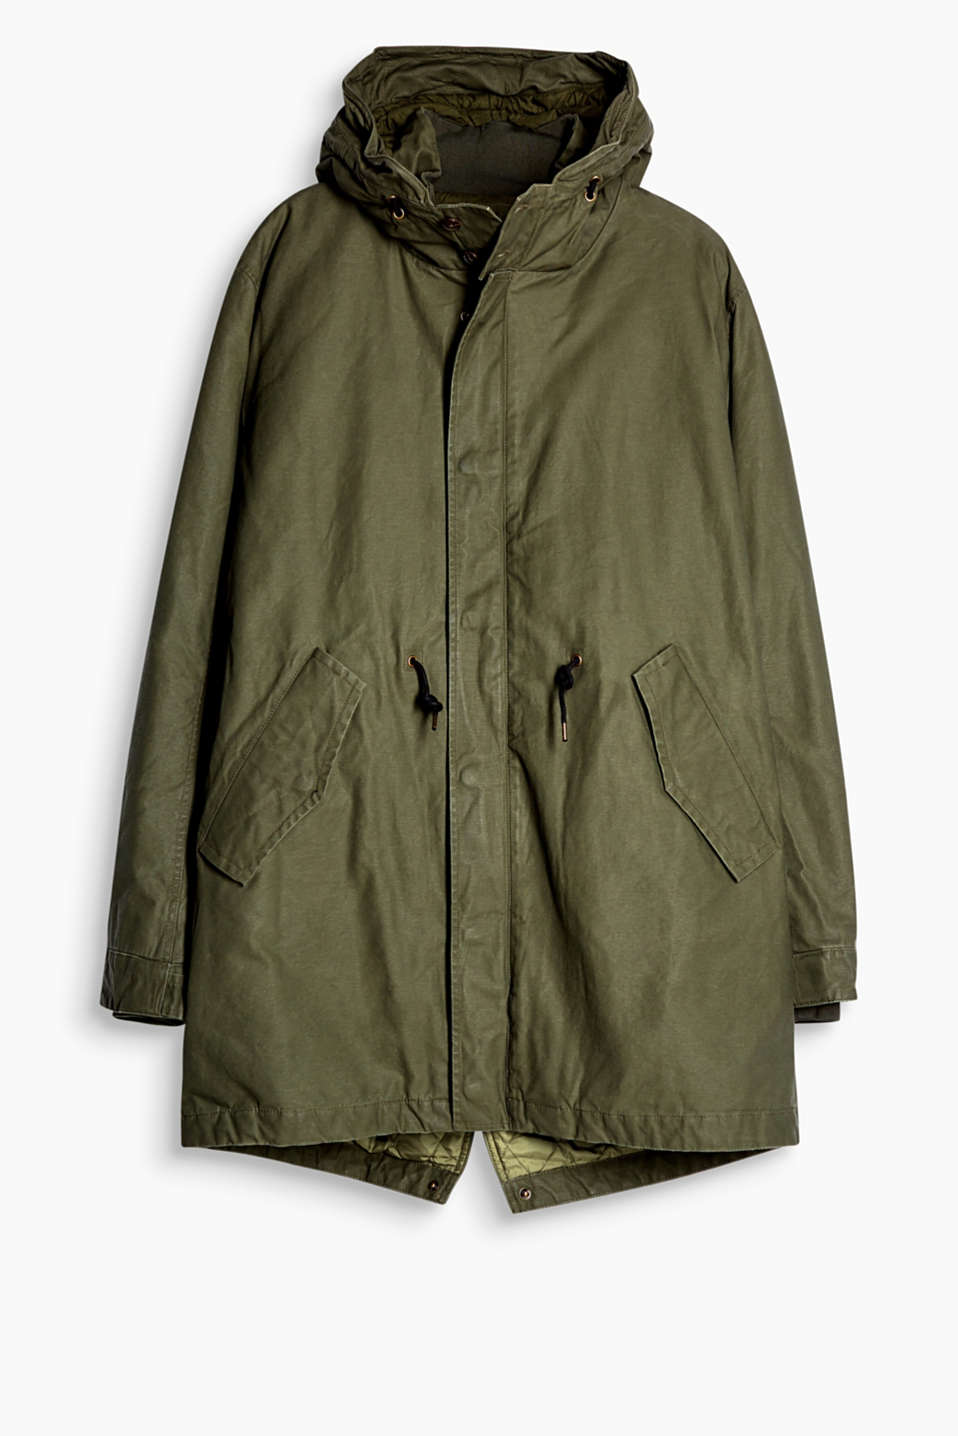 An outerwear classic! The hood and unobtrusive detailing make this long parka stand out from the crowd